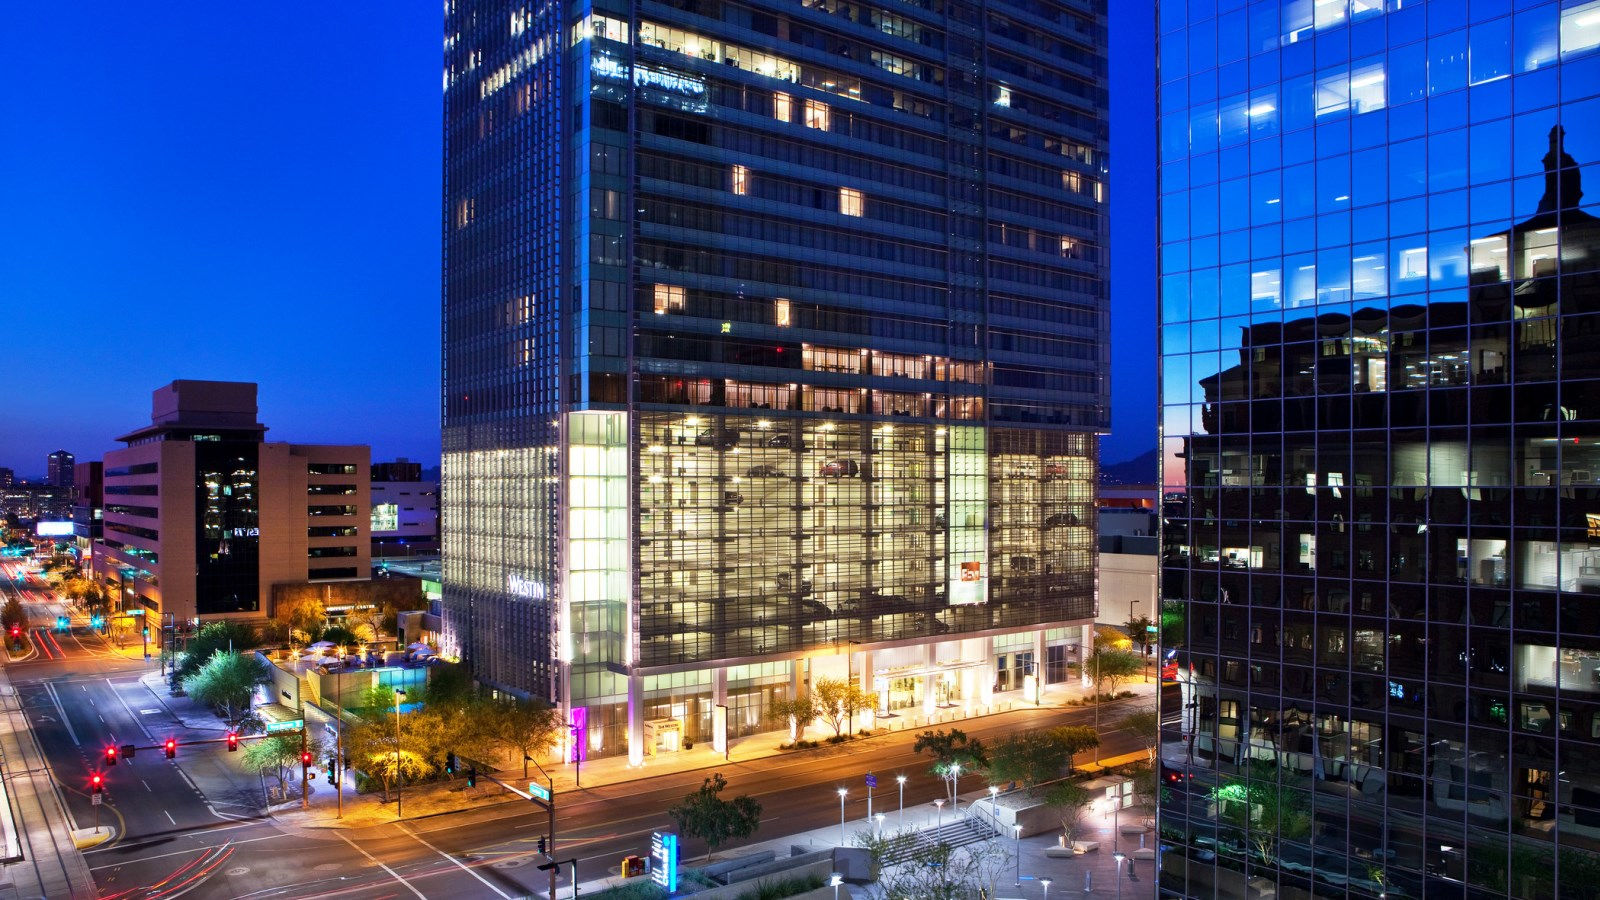 The Westin Phoenix Downtown - SPG Recognition Program